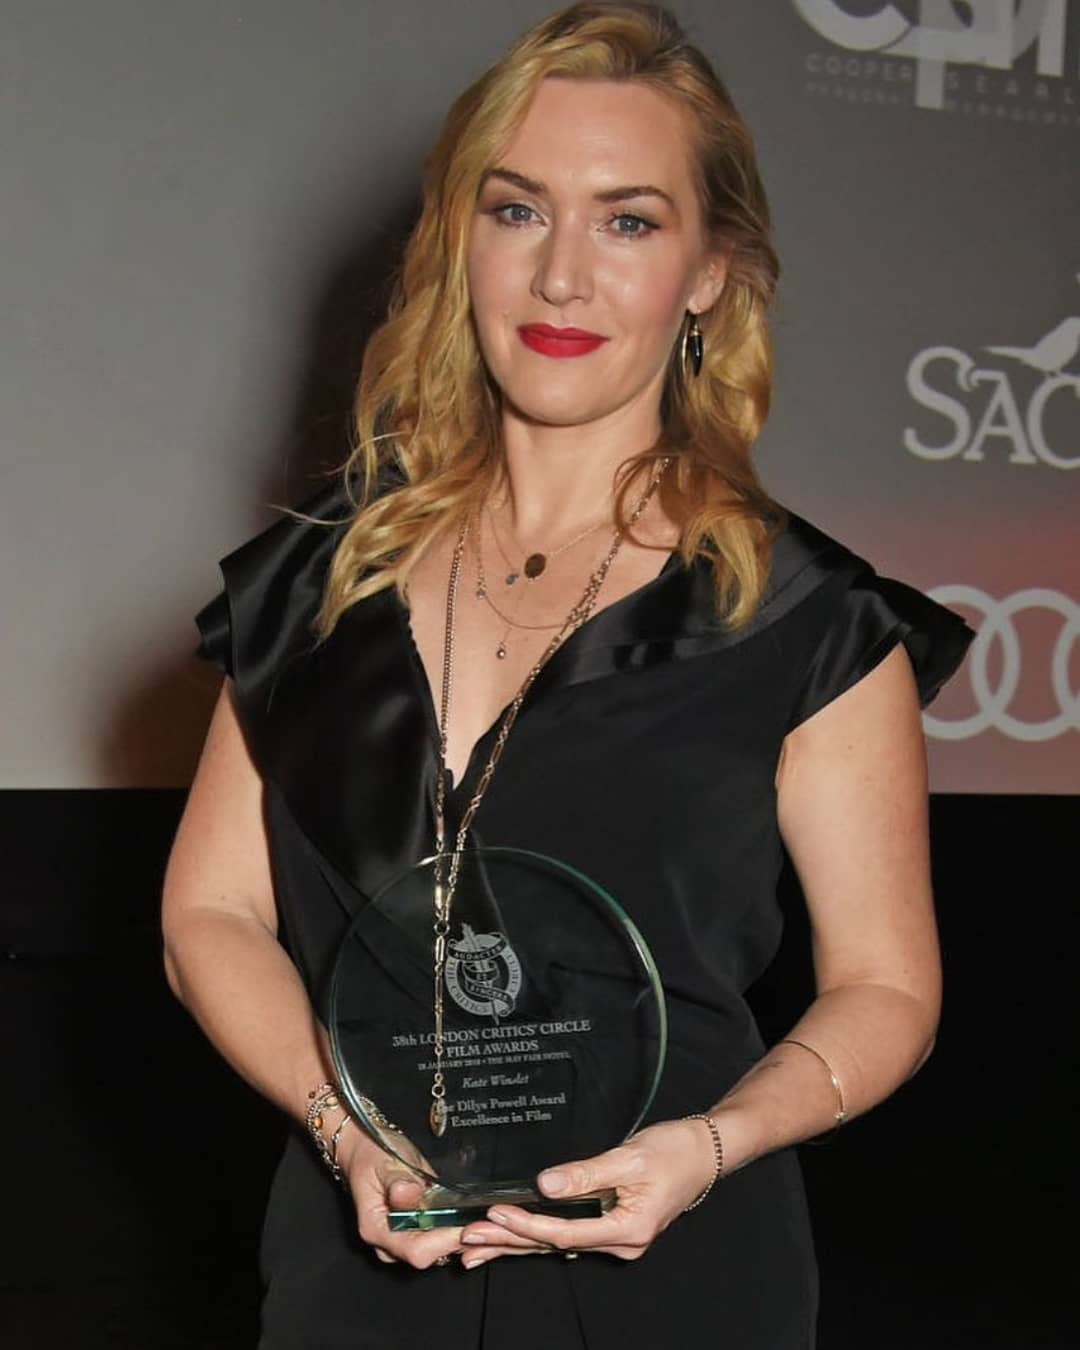 """Кейт Уинслет: """" Actress #KateWinslet wears LANVIN to attend the London Film Critics' Circle Awards 2018   @gettyimages """""""